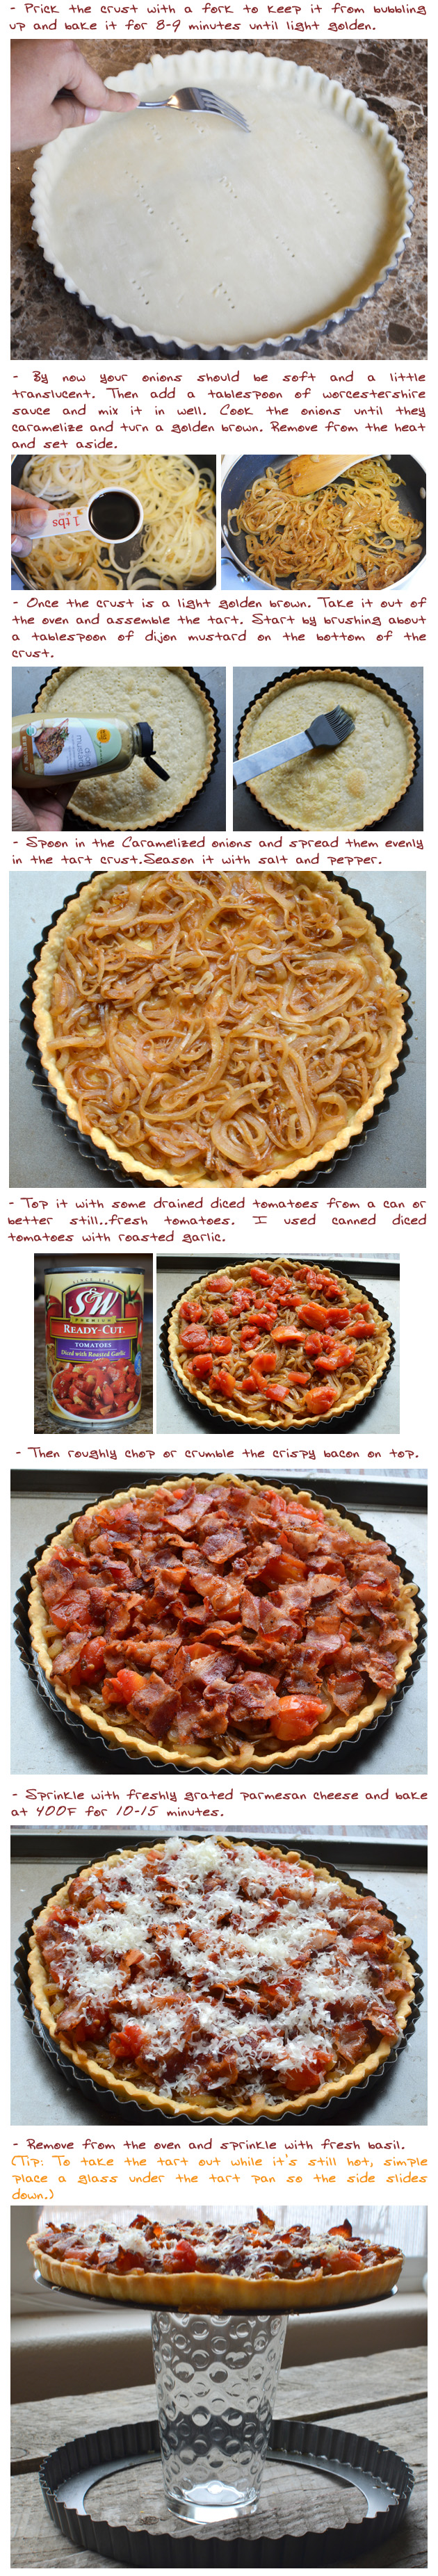 Caramelized Onion, Bacon and Tomato Tart | Picture the Recipe